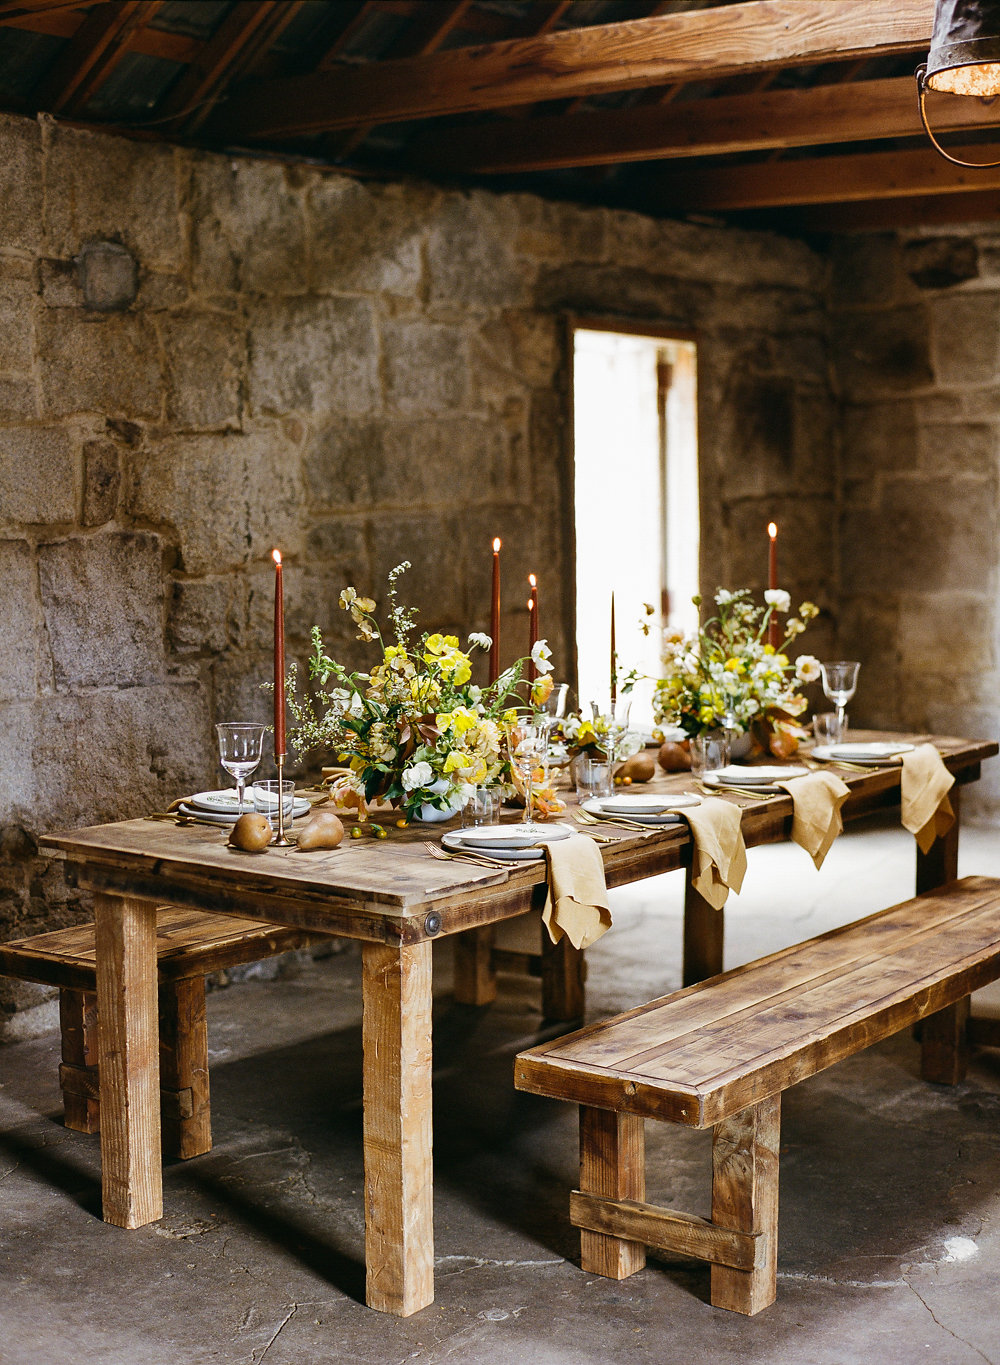 rustic wedding inspiration - photo by Taken by Sarah Photography http://ruffledblog.com/intimate-rustic-chic-wedding-inspiration